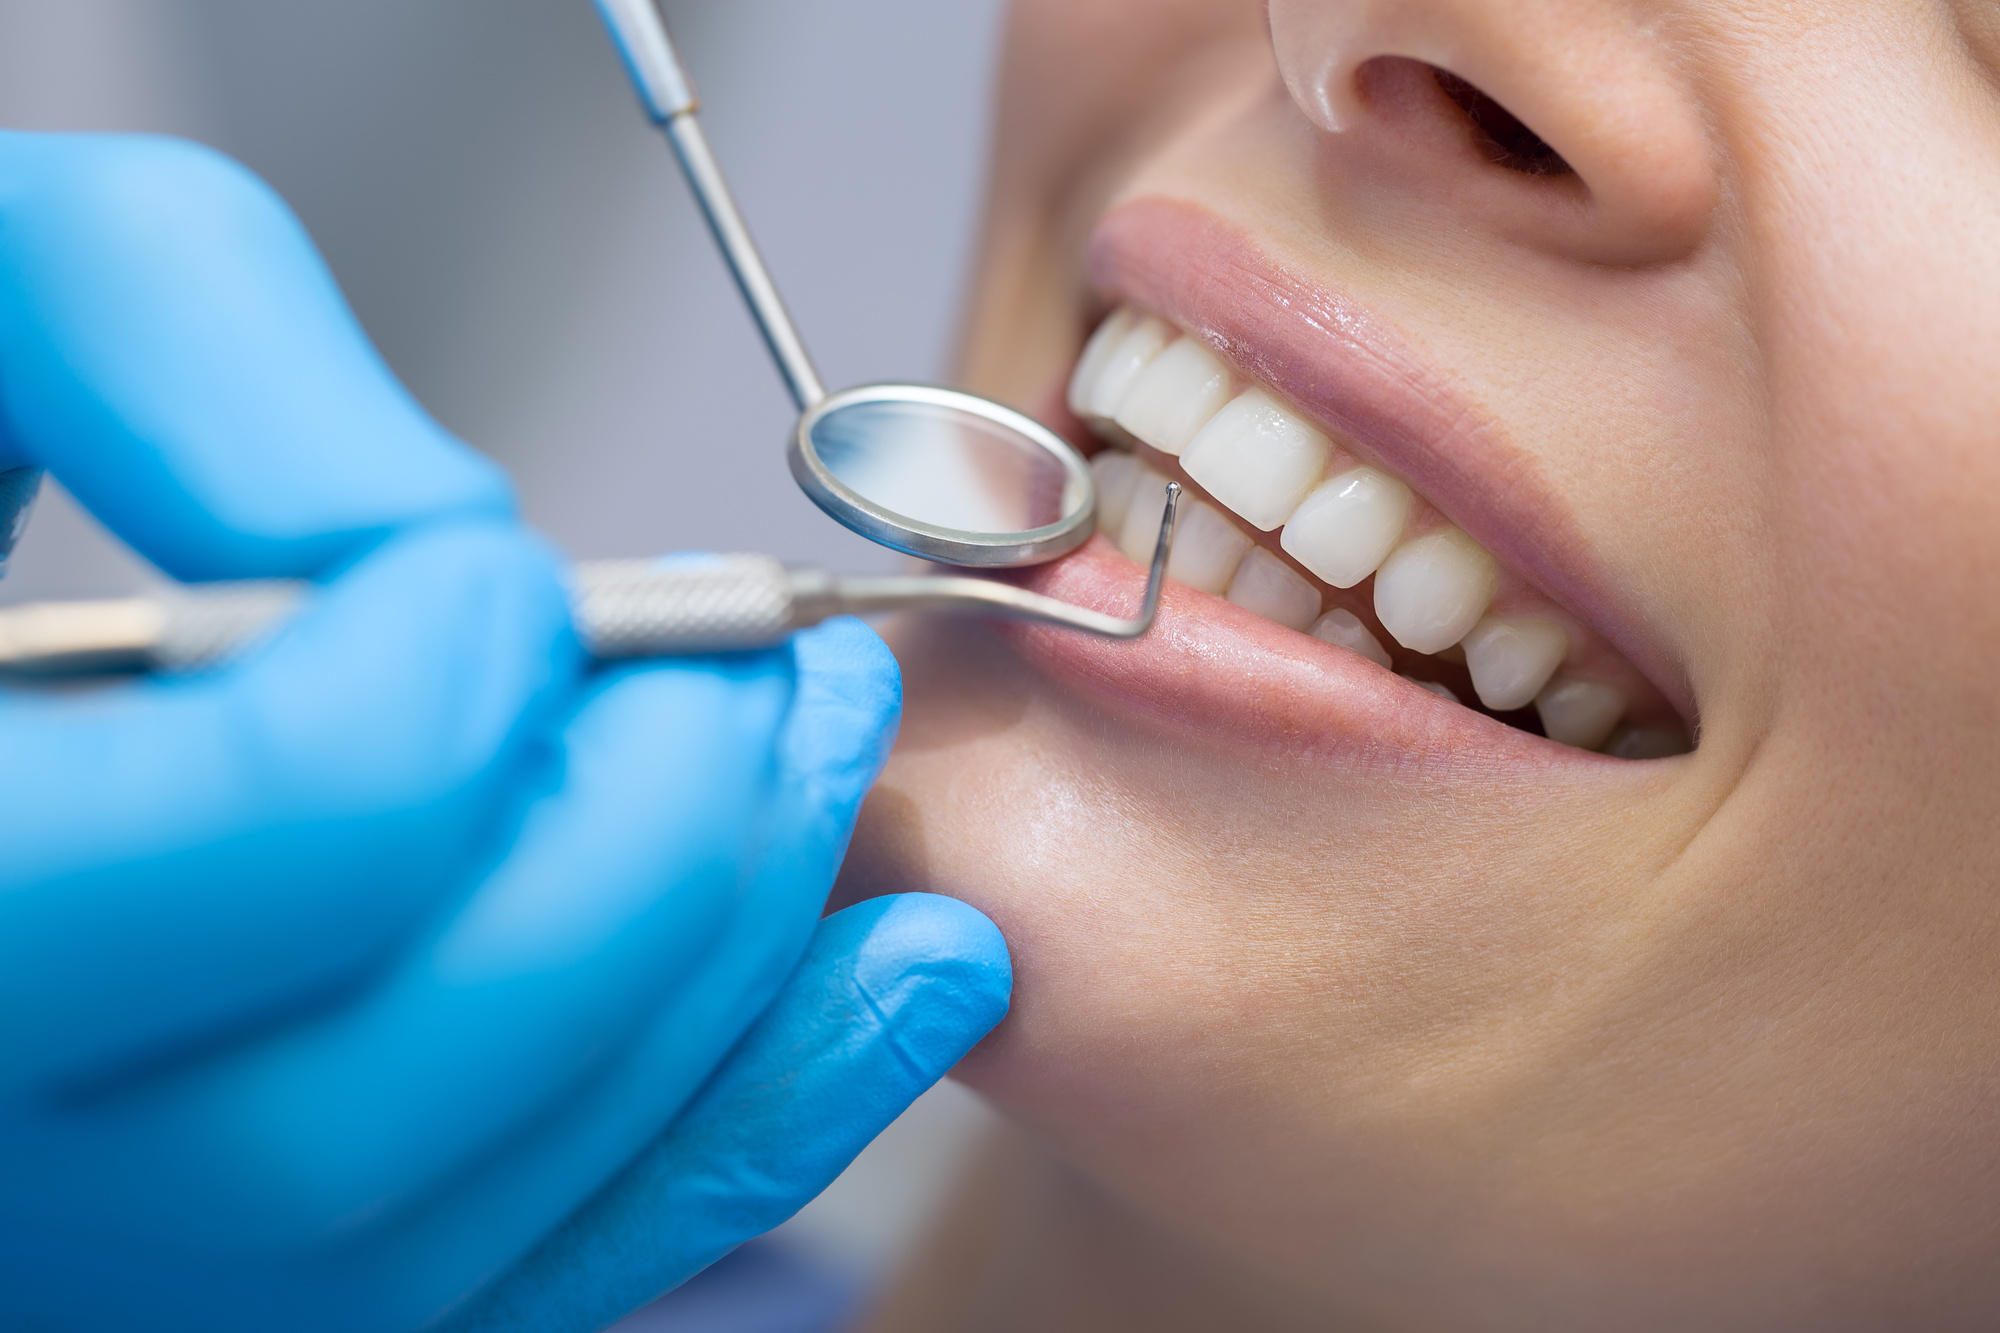 The Brief Guide That Makes Choosing the Best Local Dentist Simple